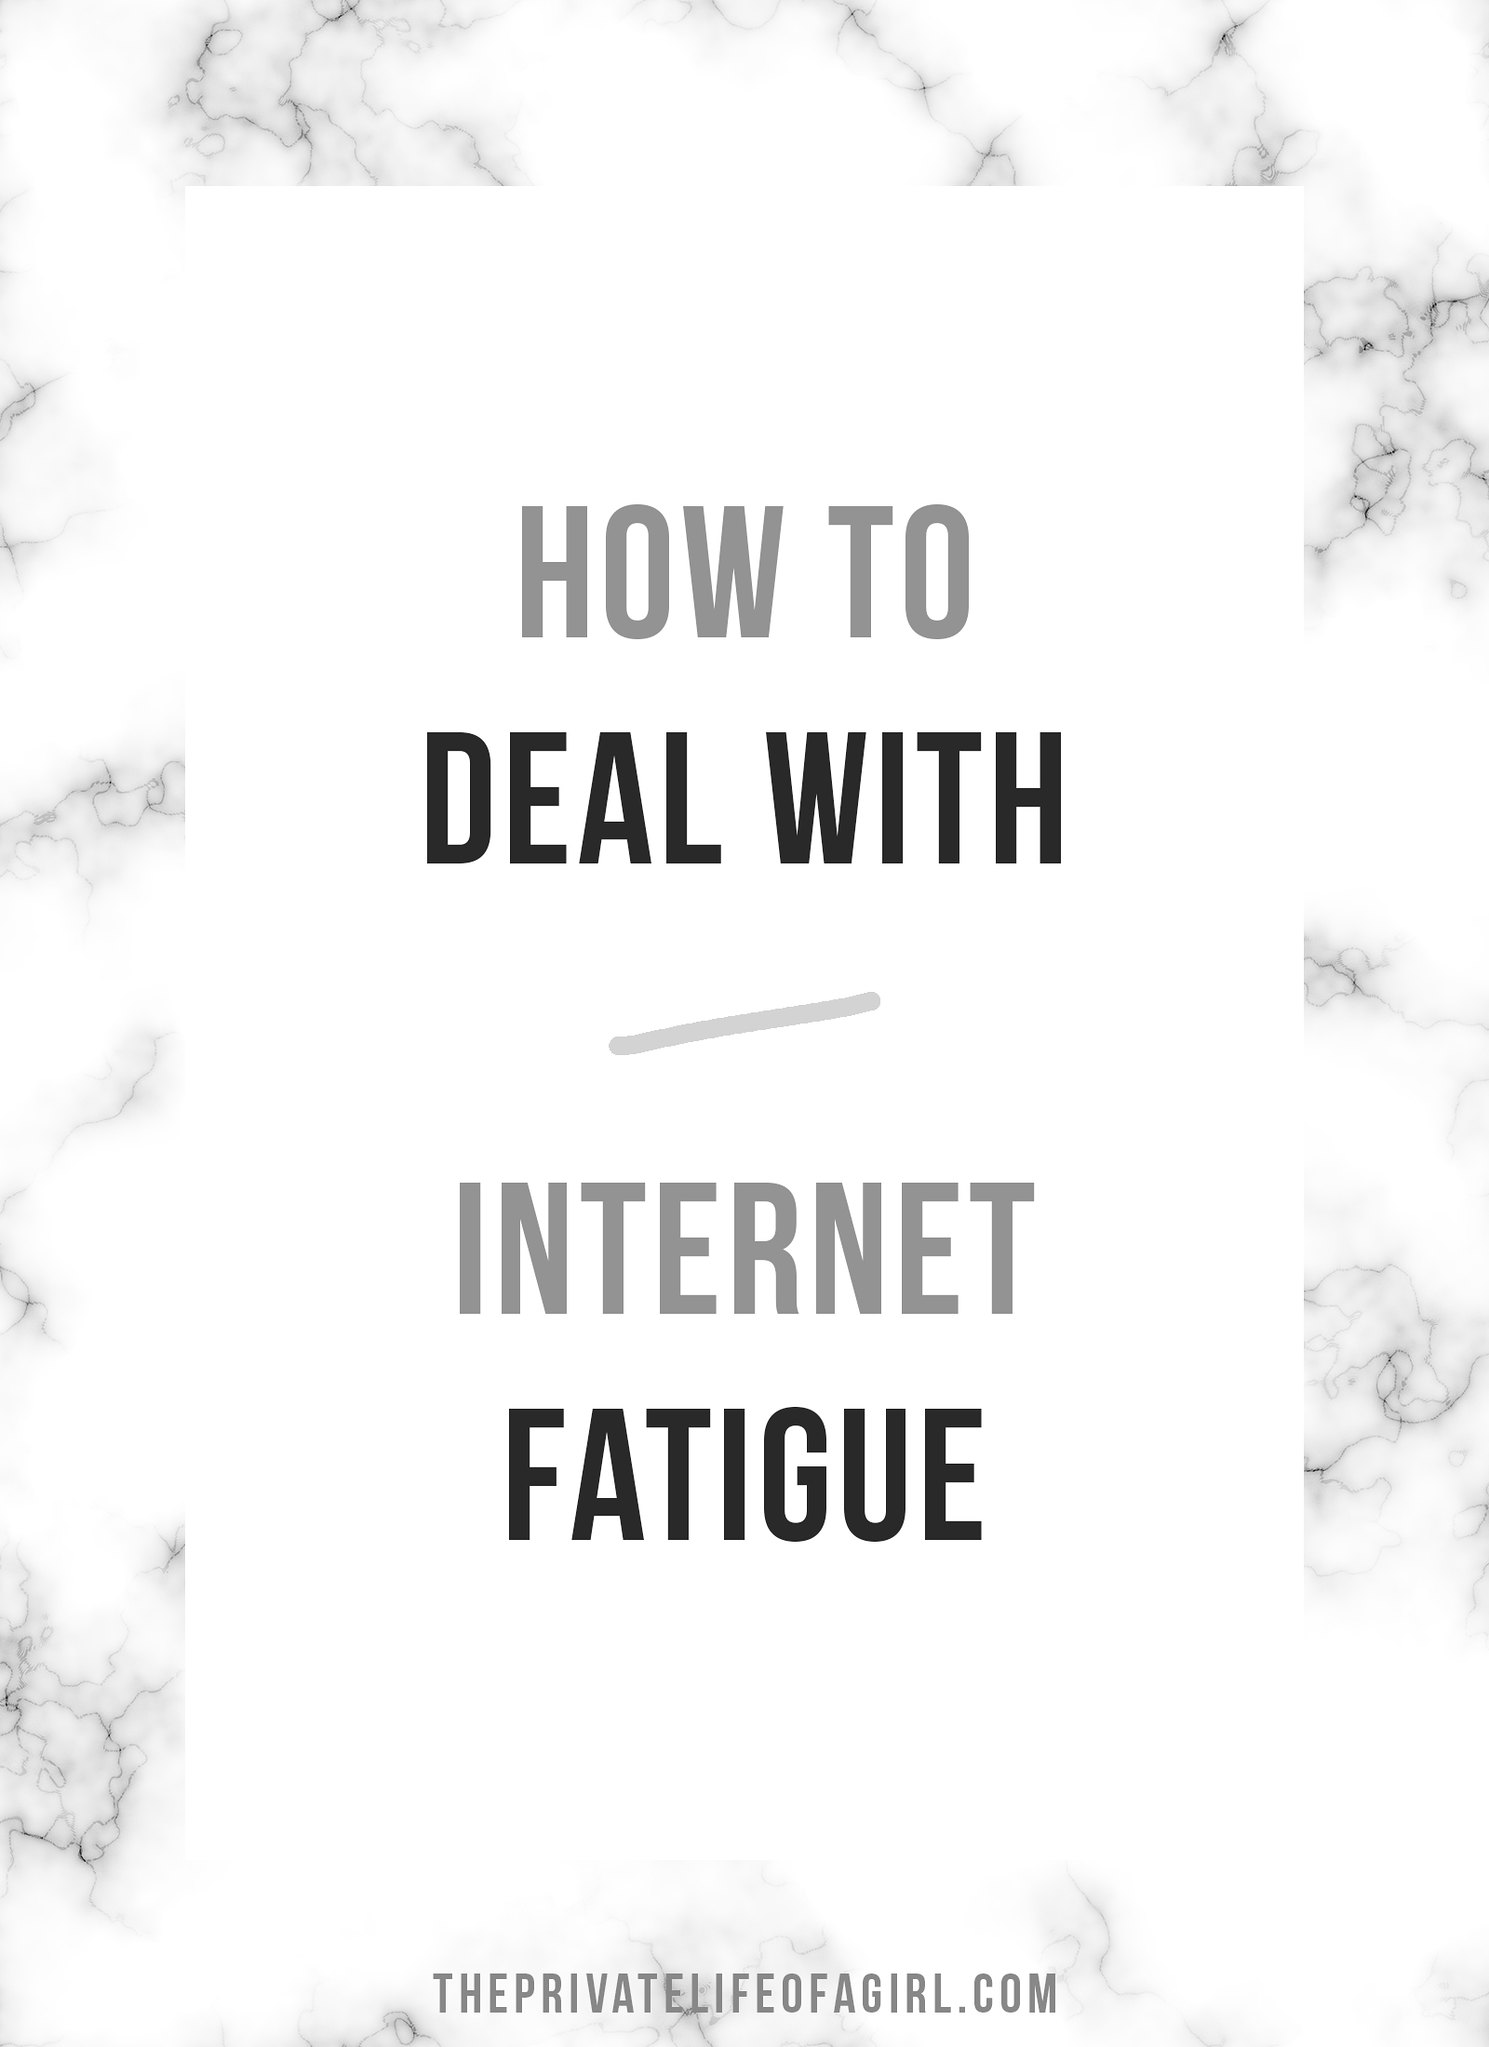 Dealing With Internet Fatigue